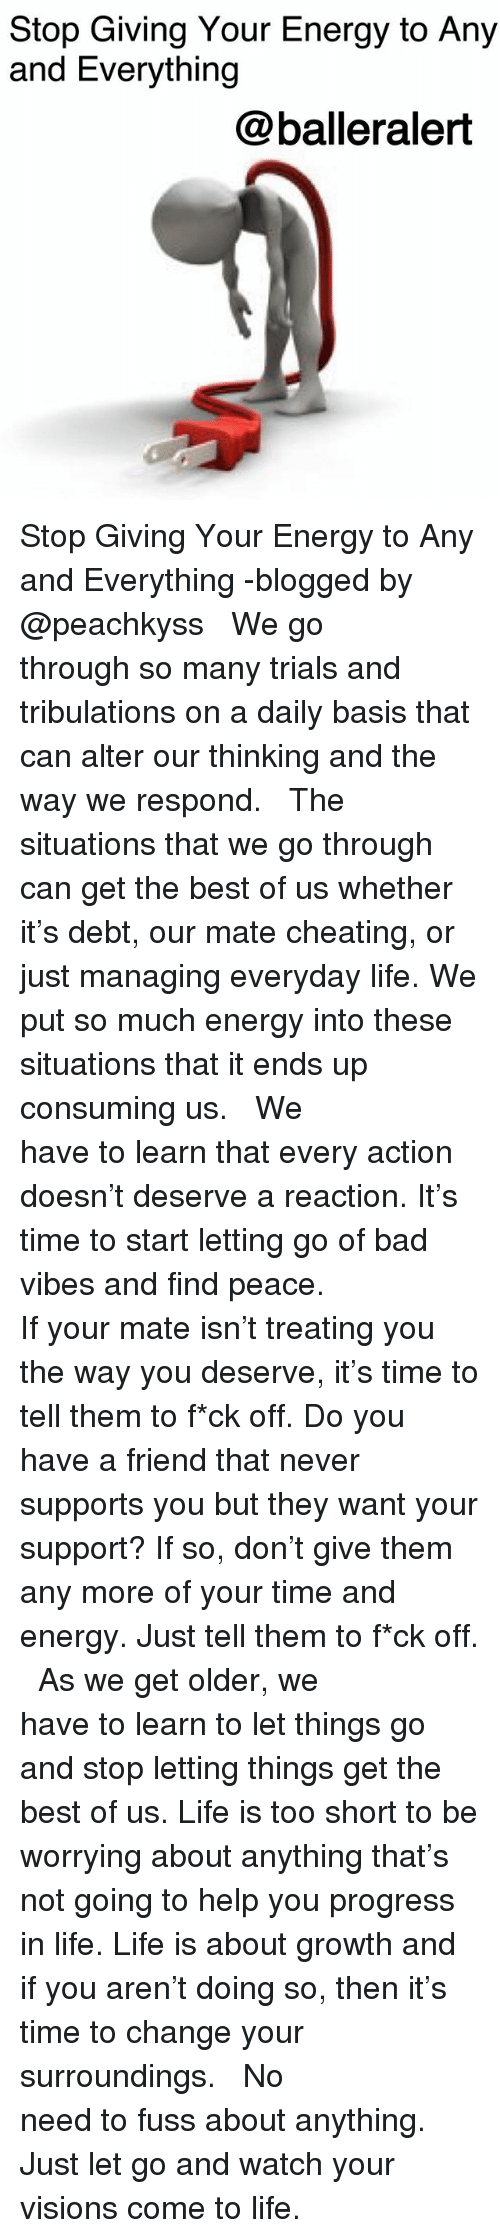 Bad, Cheating, and Energy: Stop Giving Your Energy to Any  and Everything  @balleralert Stop Giving Your Energy to Any and Everything -blogged by @peachkyss ⠀⠀⠀⠀⠀⠀⠀ ⠀⠀⠀⠀⠀⠀⠀ We go through so many trials and tribulations on a daily basis that can alter our thinking and the way we respond. ⠀⠀⠀⠀⠀⠀⠀ ⠀⠀⠀⠀⠀⠀⠀ The situations that we go through can get the best of us whether it's debt, our mate cheating, or just managing everyday life. We put so much energy into these situations that it ends up consuming us. ⠀⠀⠀⠀⠀⠀⠀ ⠀⠀⠀⠀⠀⠀⠀ We have to learn that every action doesn't deserve a reaction. It's time to start letting go of bad vibes and find peace. ⠀⠀⠀⠀⠀⠀⠀ ⠀⠀⠀⠀⠀⠀⠀ If your mate isn't treating you the way you deserve, it's time to tell them to f*ck off. Do you have a friend that never supports you but they want your support? If so, don't give them any more of your time and energy. Just tell them to f*ck off. ⠀⠀⠀⠀⠀⠀⠀ ⠀⠀⠀⠀⠀⠀⠀ As we get older, we have to learn to let things go and stop letting things get the best of us. Life is too short to be worrying about anything that's not going to help you progress in life. Life is about growth and if you aren't doing so, then it's time to change your surroundings. ⠀⠀⠀⠀⠀⠀⠀ ⠀⠀⠀⠀⠀⠀⠀ No need to fuss about anything. Just let go and watch your visions come to life.